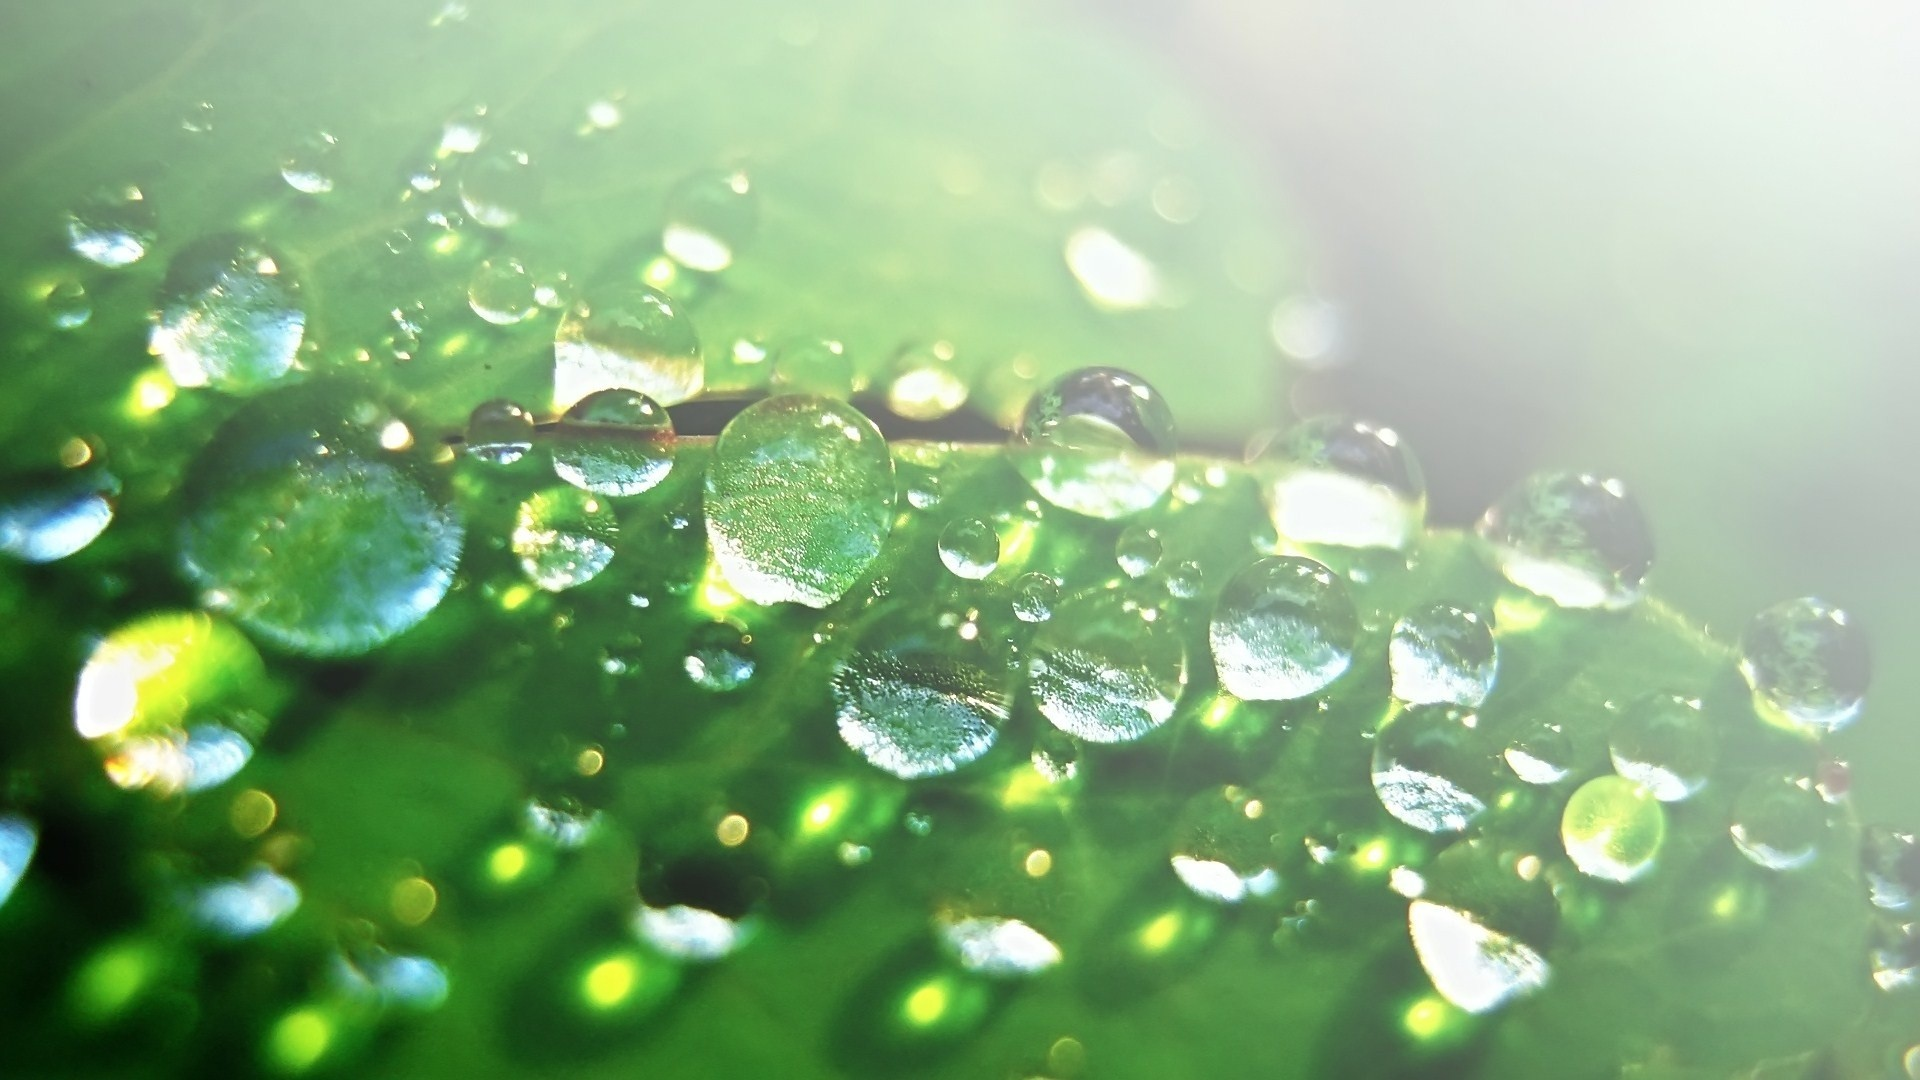 cool water drop wallpaper 26130 1920x1080 px ~ hdwallsource